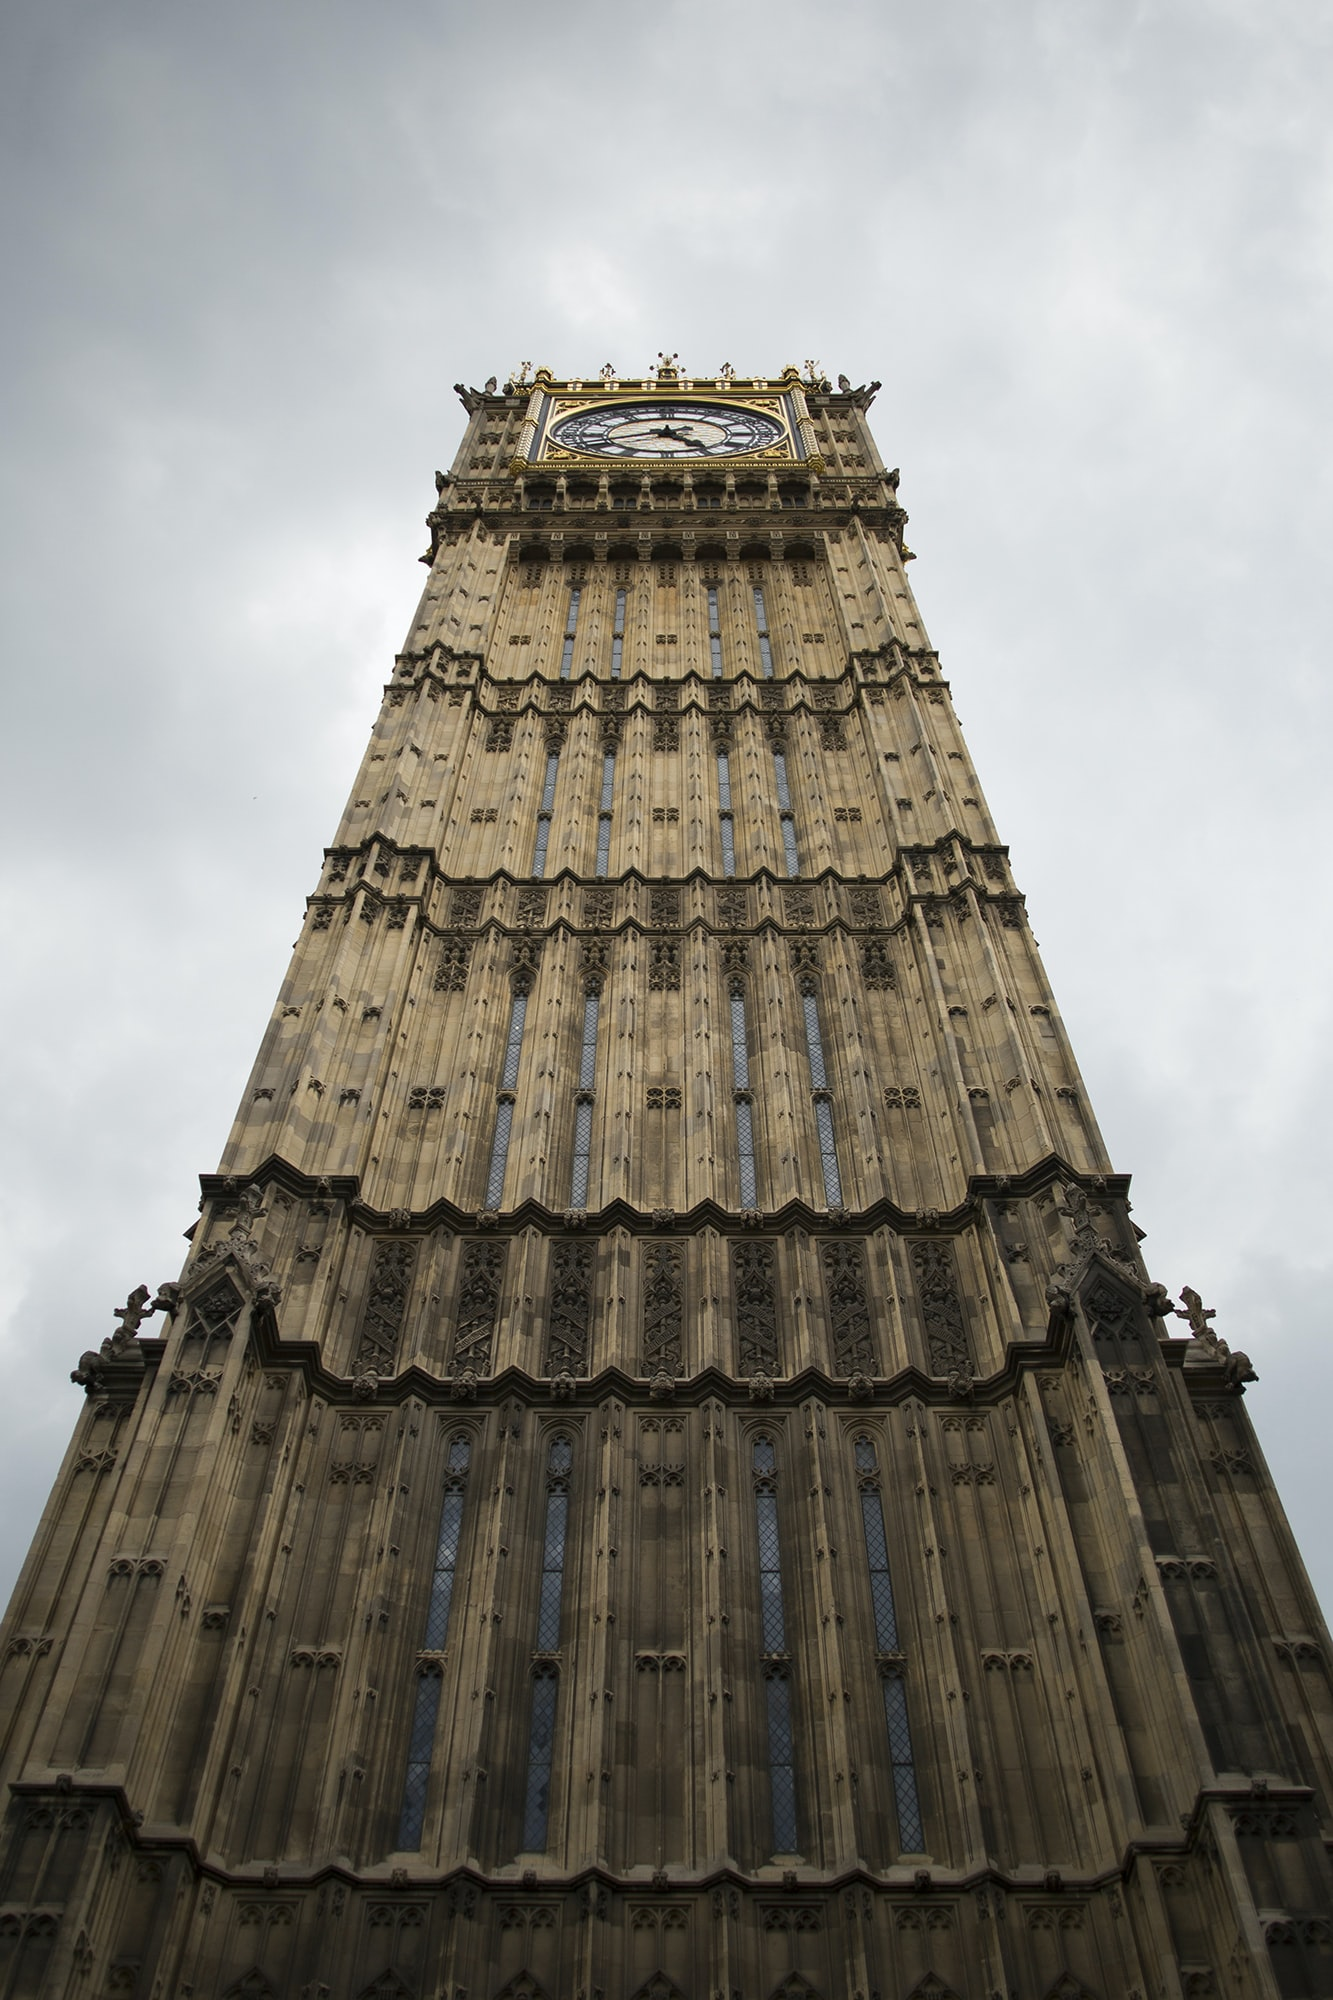 Great clock at Westminster Recommended Reading: Big Ben To Stop Chiming For Four Years Recommended Reading: Big Ben To Stop Chiming For Four Years 20010047 copy